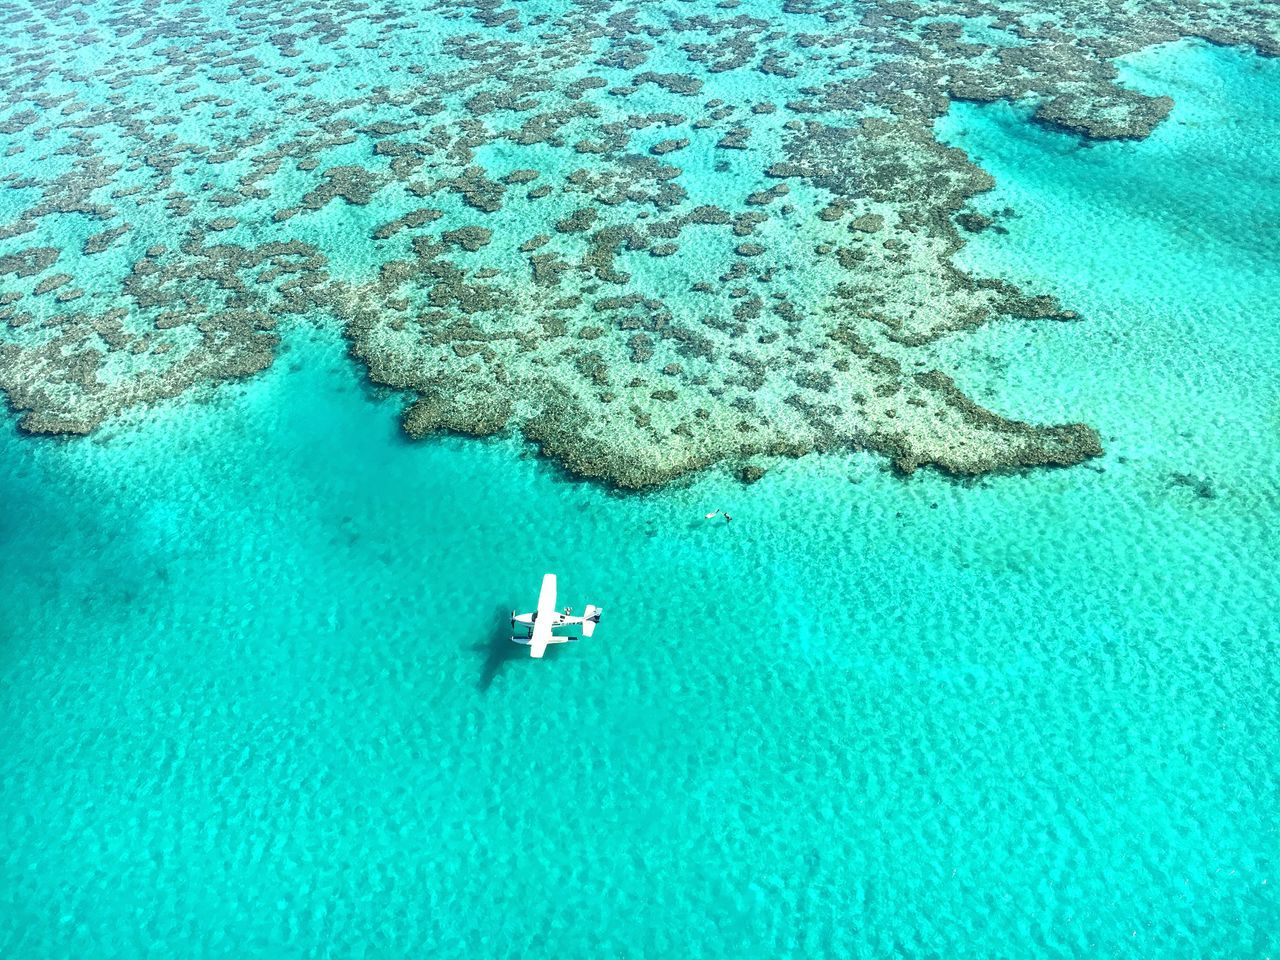 AERIAL VIEW OF AN AIRCRAFT AT THE GREAT BARRIER REEF